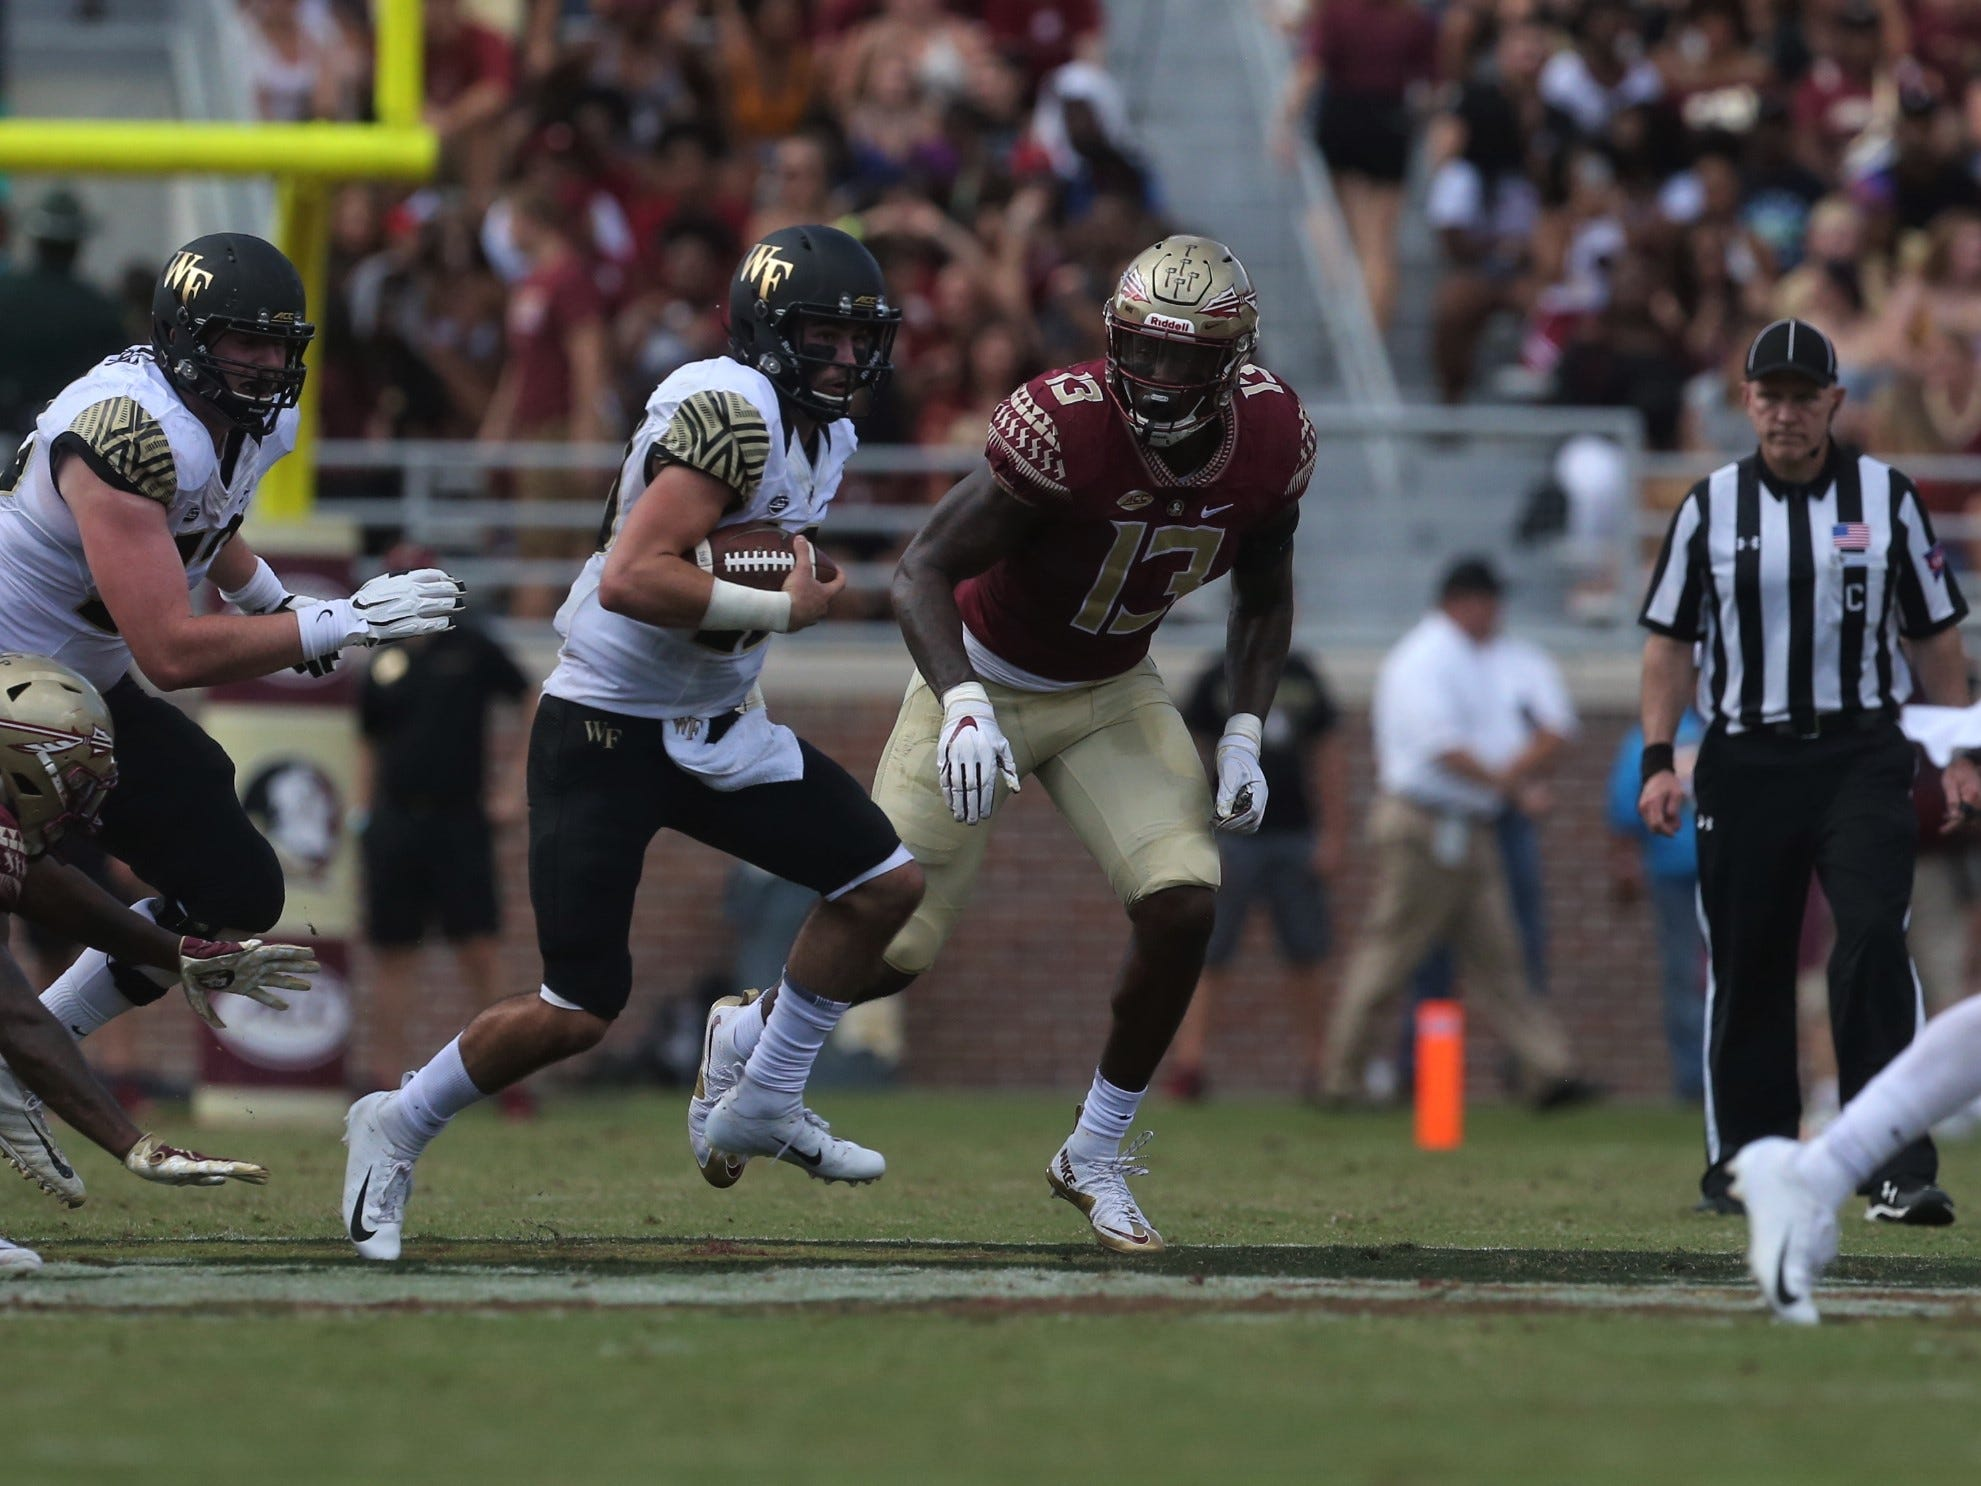 Wake Forest quarterback Sam Hartman rushes for a gain past Florida State defensive end Joshua Kaindoh during a game at Doak Campbell Stadium on Saturday, Oct. 20, 2018.